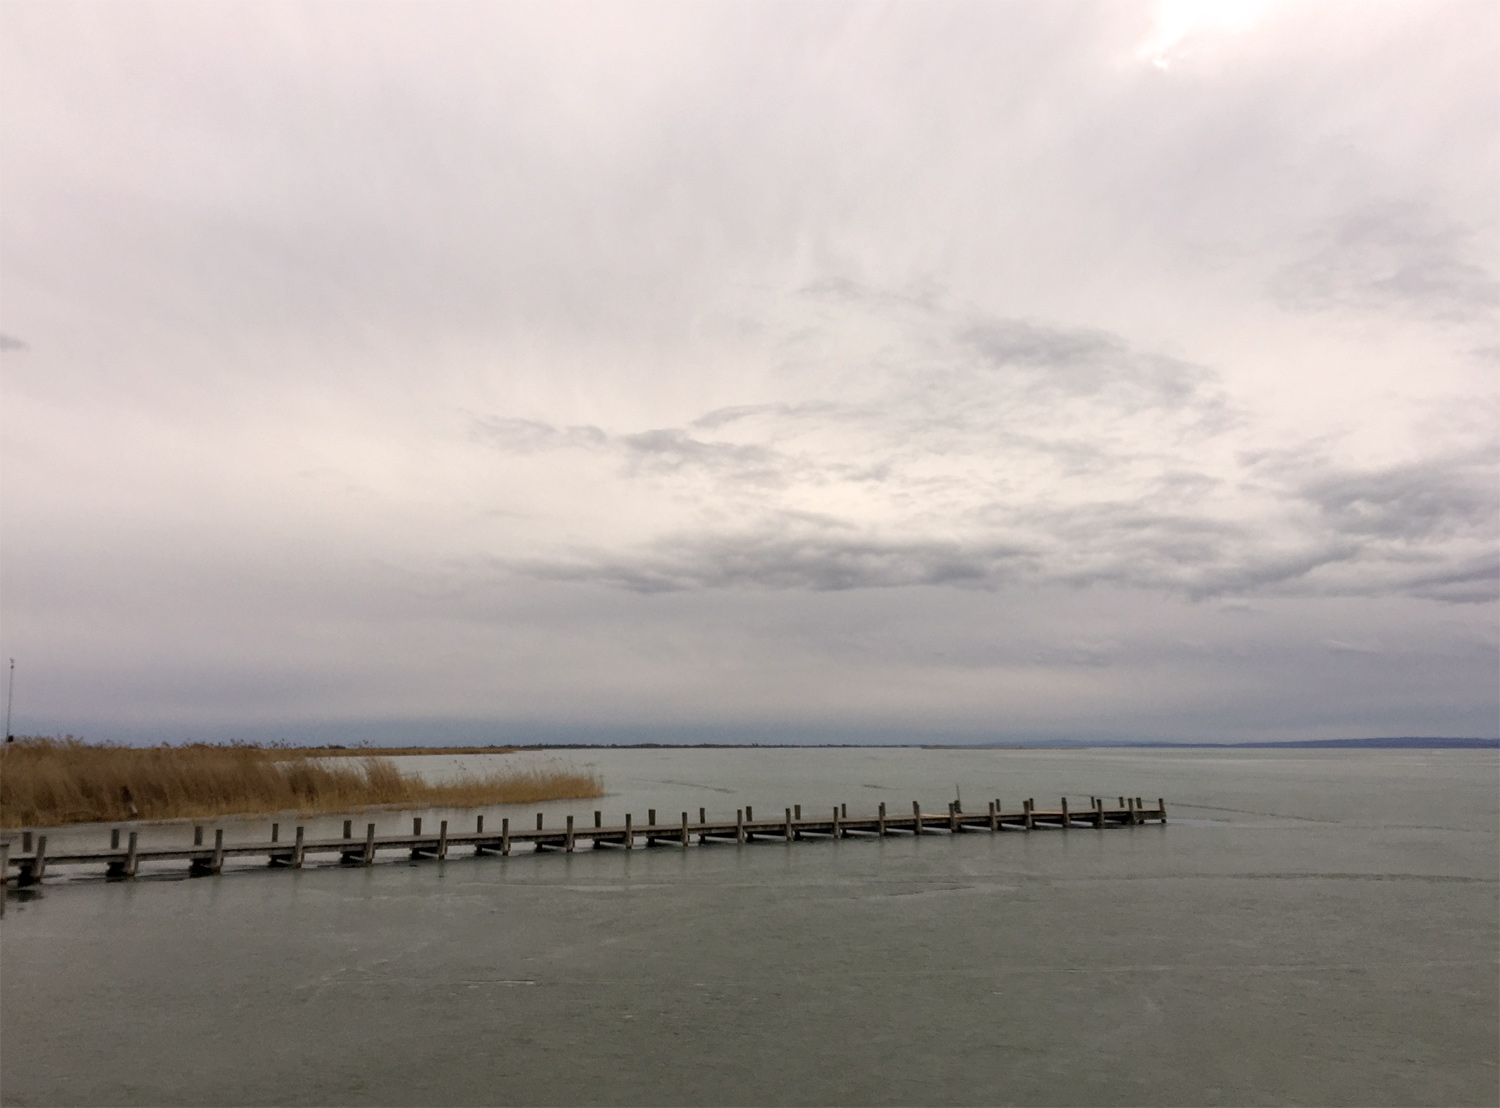 Lake Neusiedl, a winter view from Weiden to Podersdorf